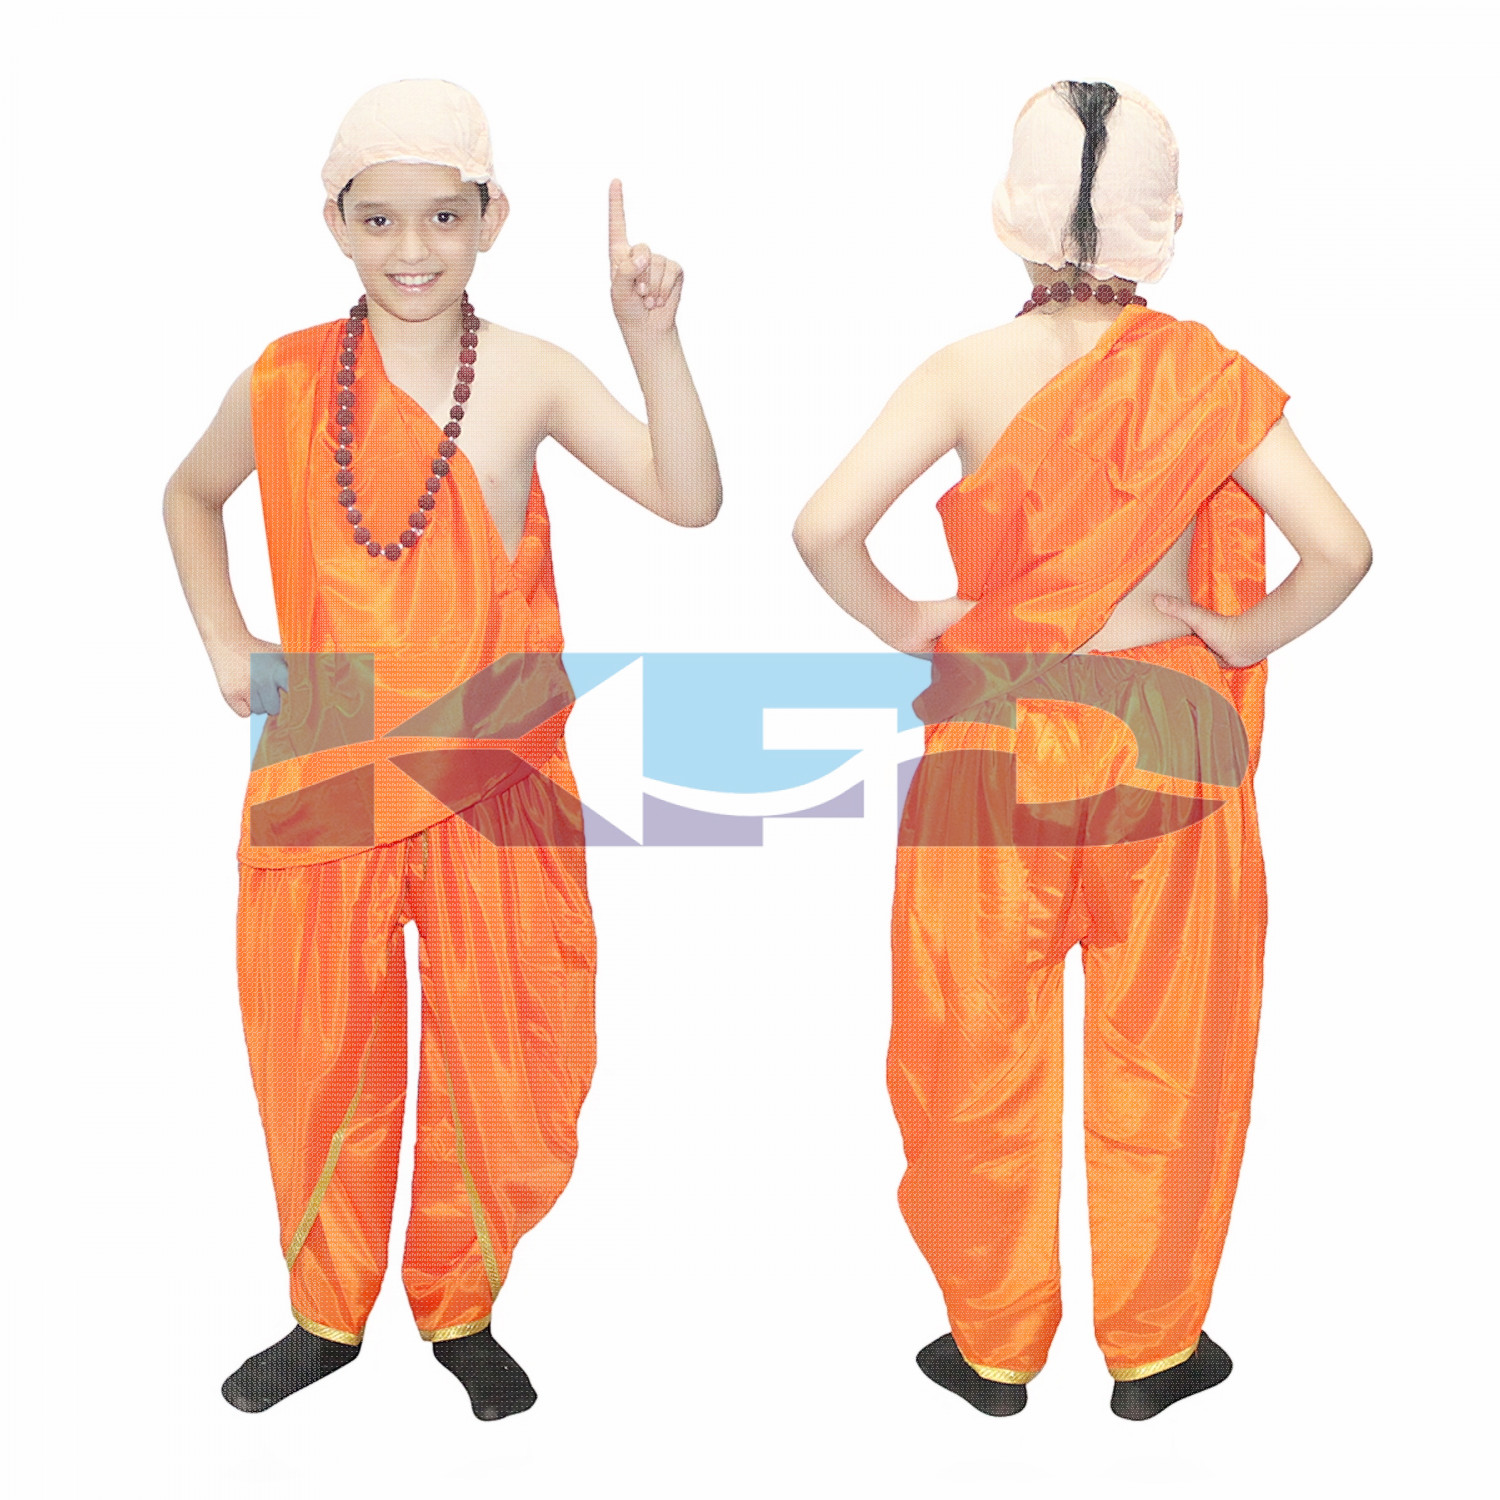 Arya Bhatt Costume For Kids/National Hero/Tulsidas Costume/Valmiki Costumefreedom figter Costume For Kids Independence Day/Republic Day/School Annual function/Theme party/Competition/Stage Shows Dress